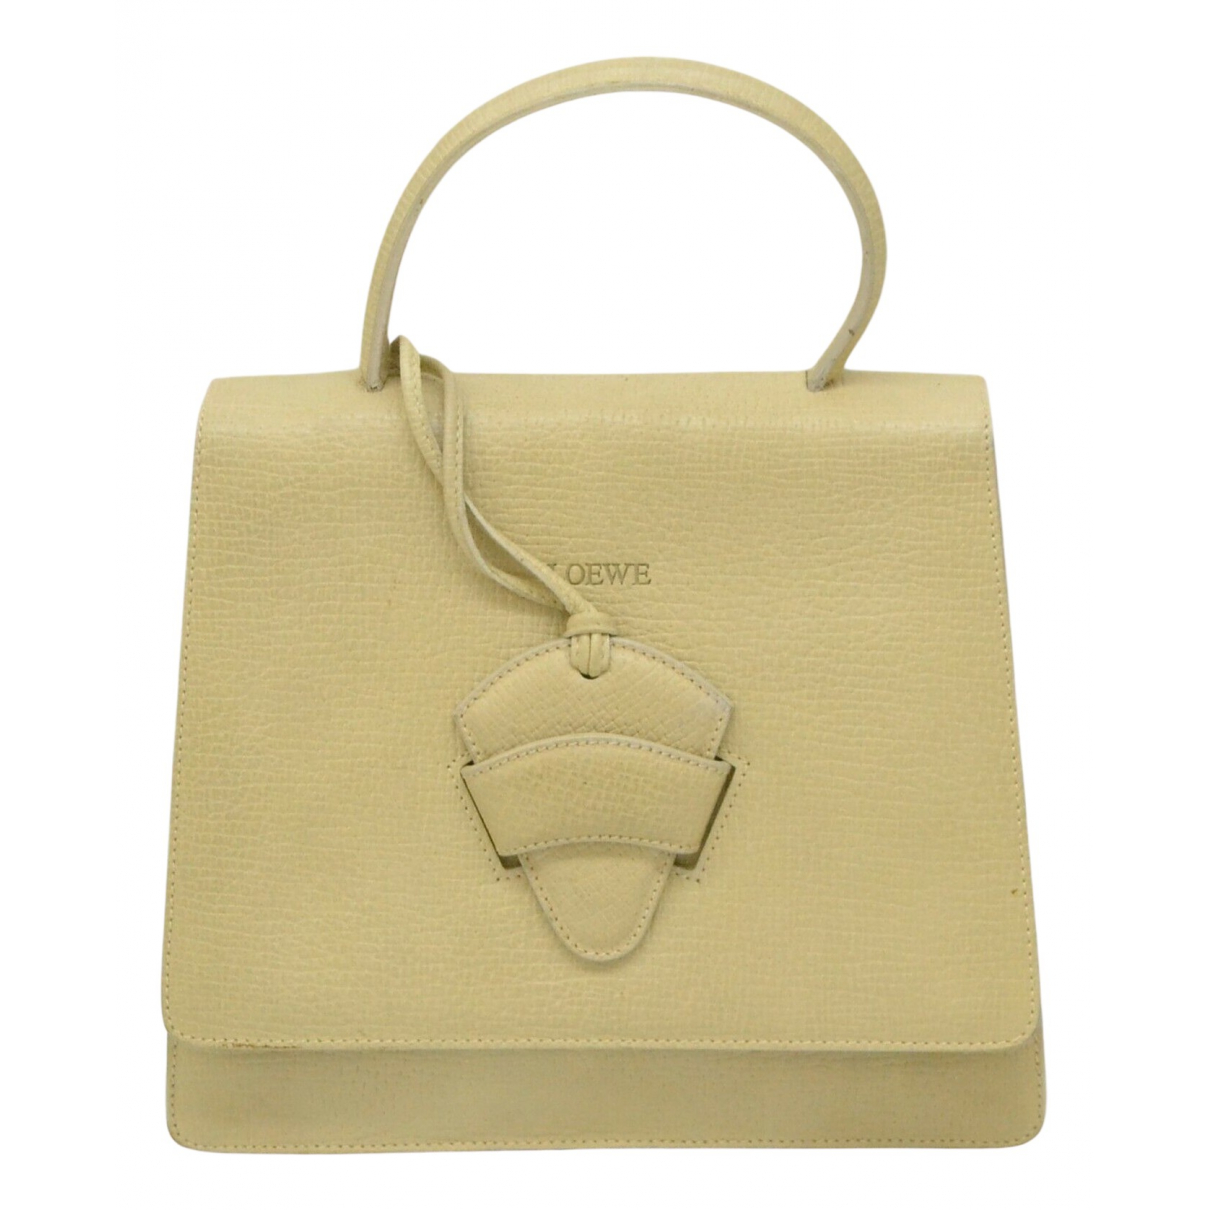 Loewe \N Yellow Leather handbag for Women \N